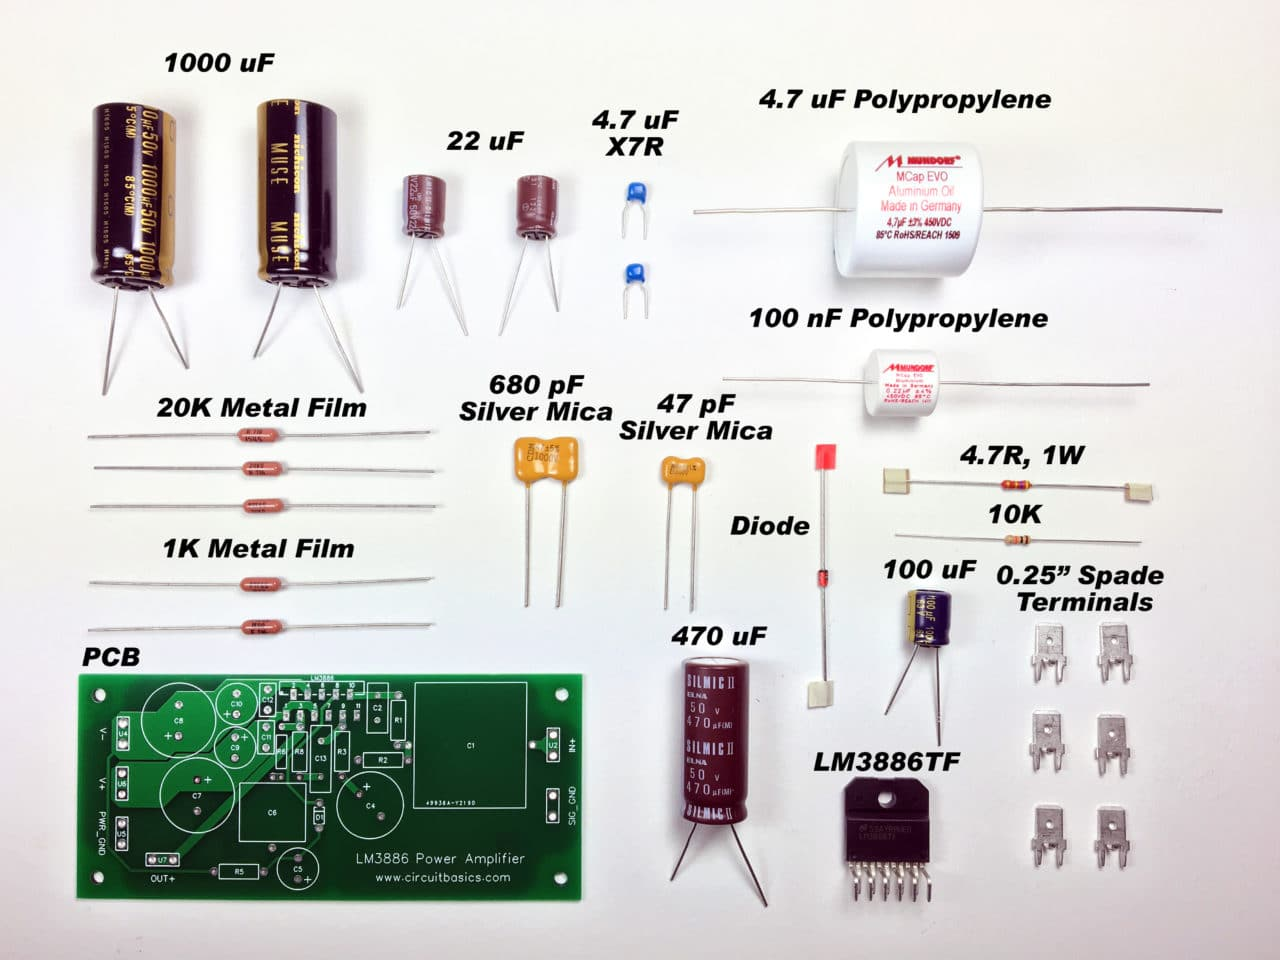 A Complete Guide To Design And Build Hi Fi Lm3886 Amplifier Inserting Tone Control Between Preamp Power Amp The Total Cost Came About 118 For Both Channels Not Including Chassis Supply Wiring Parts You Can It Lot Less With Cheaper